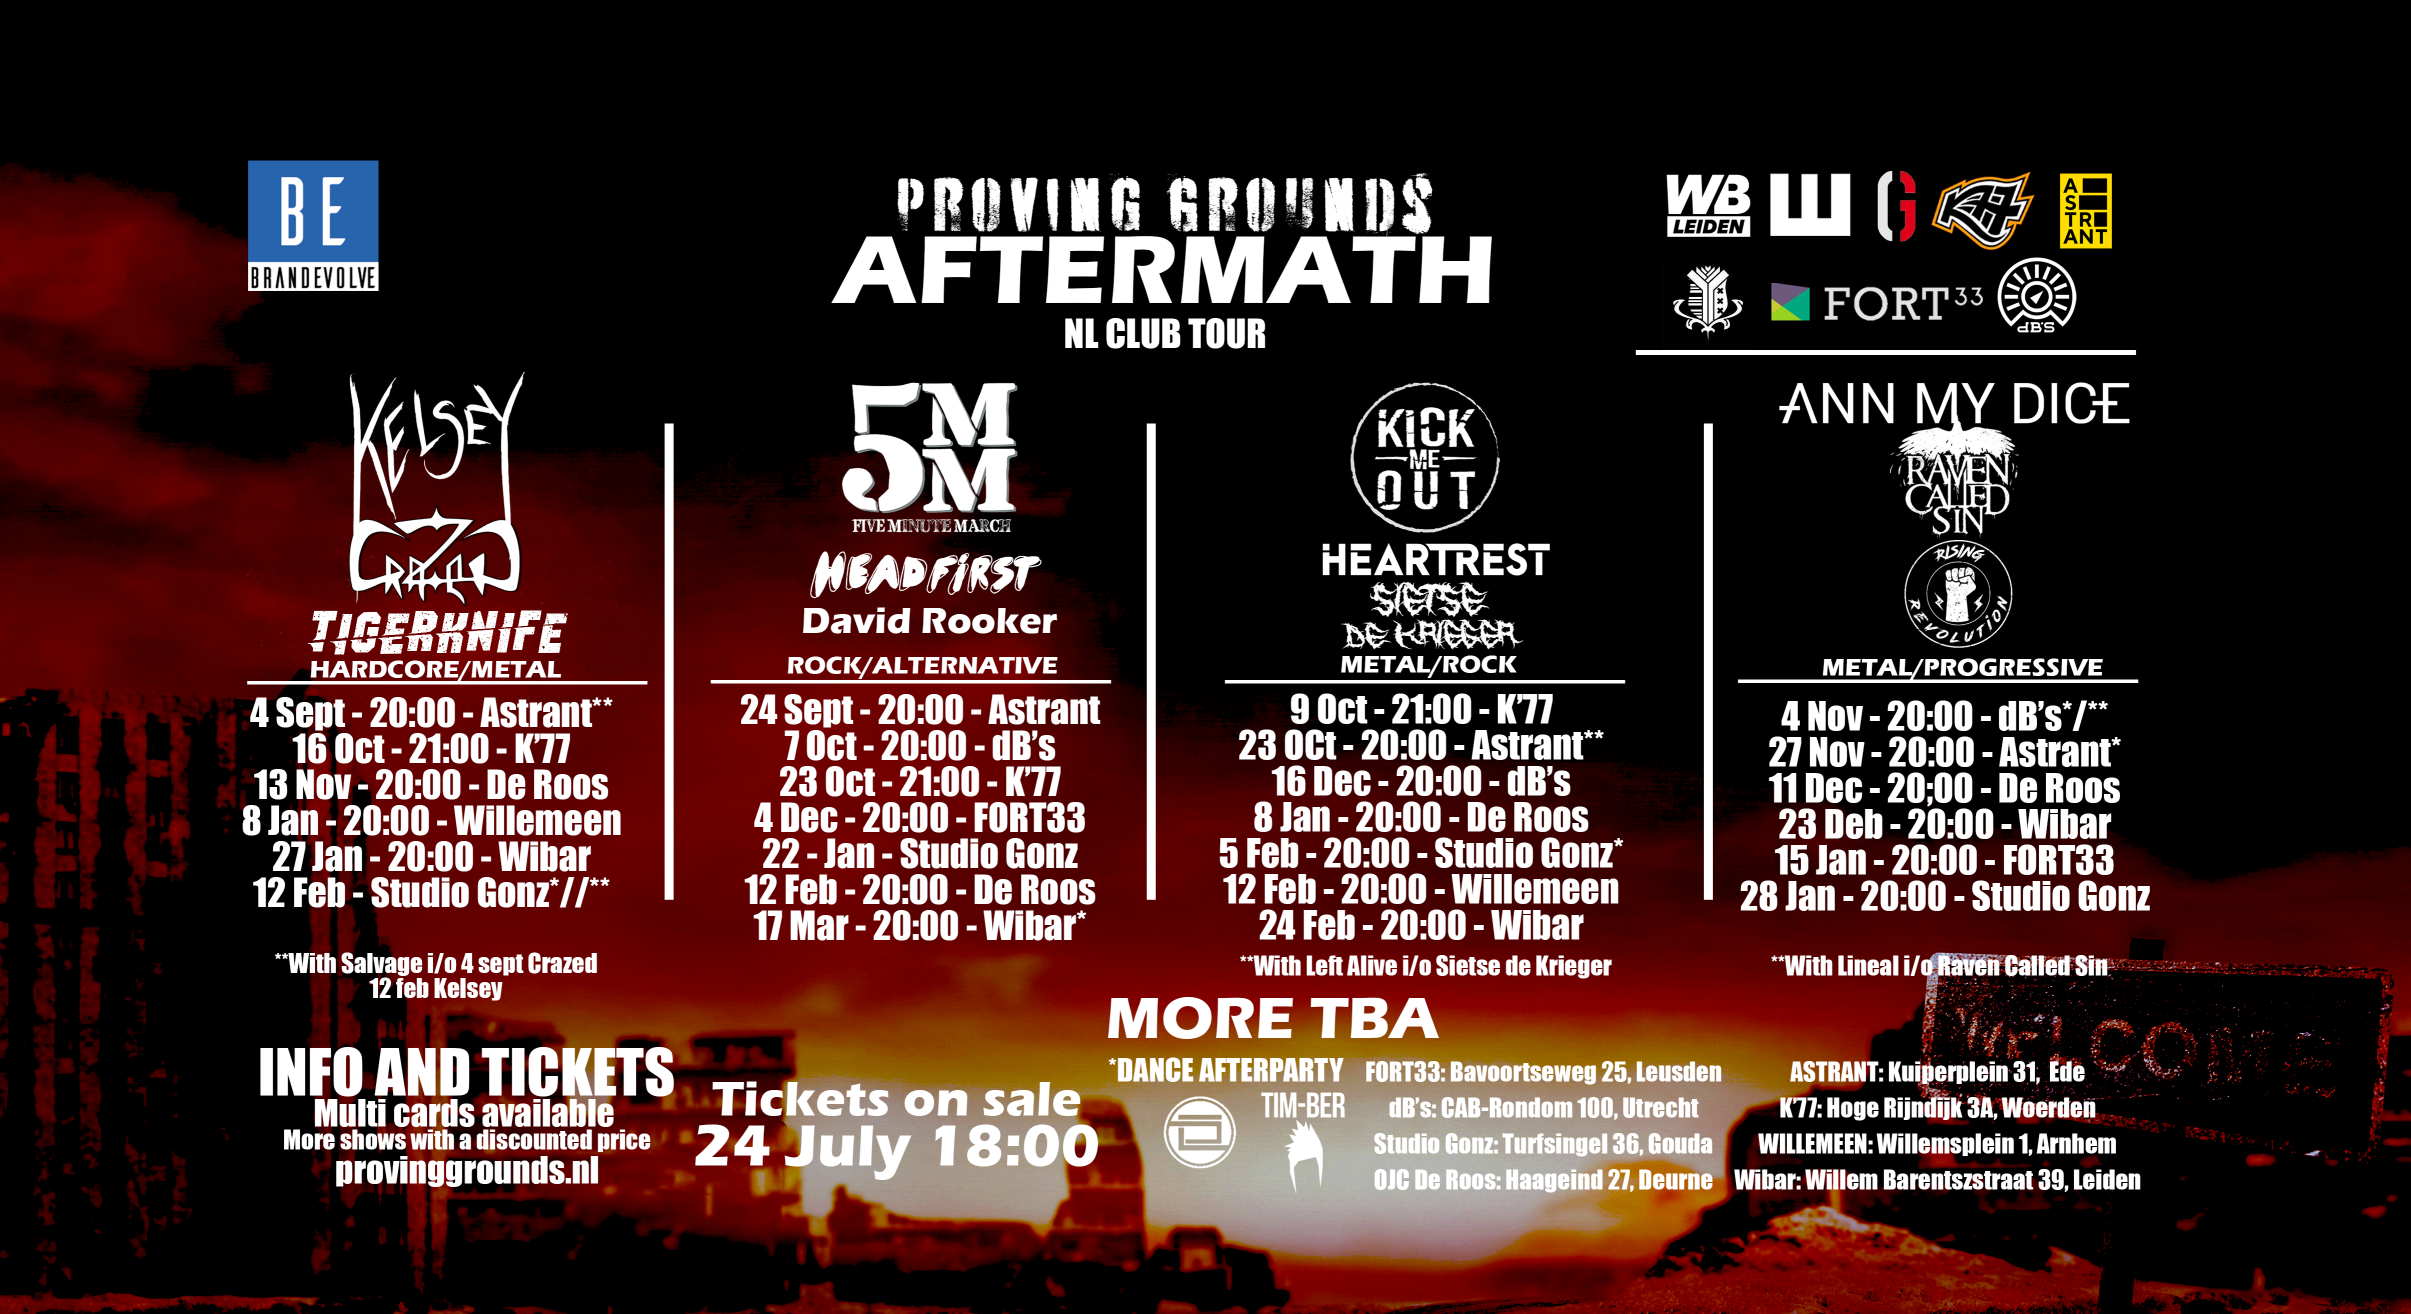 BrandEvolve Bookings Presents Proving Grounds Aftermath: The Biggest Livestream Music Festival Ever